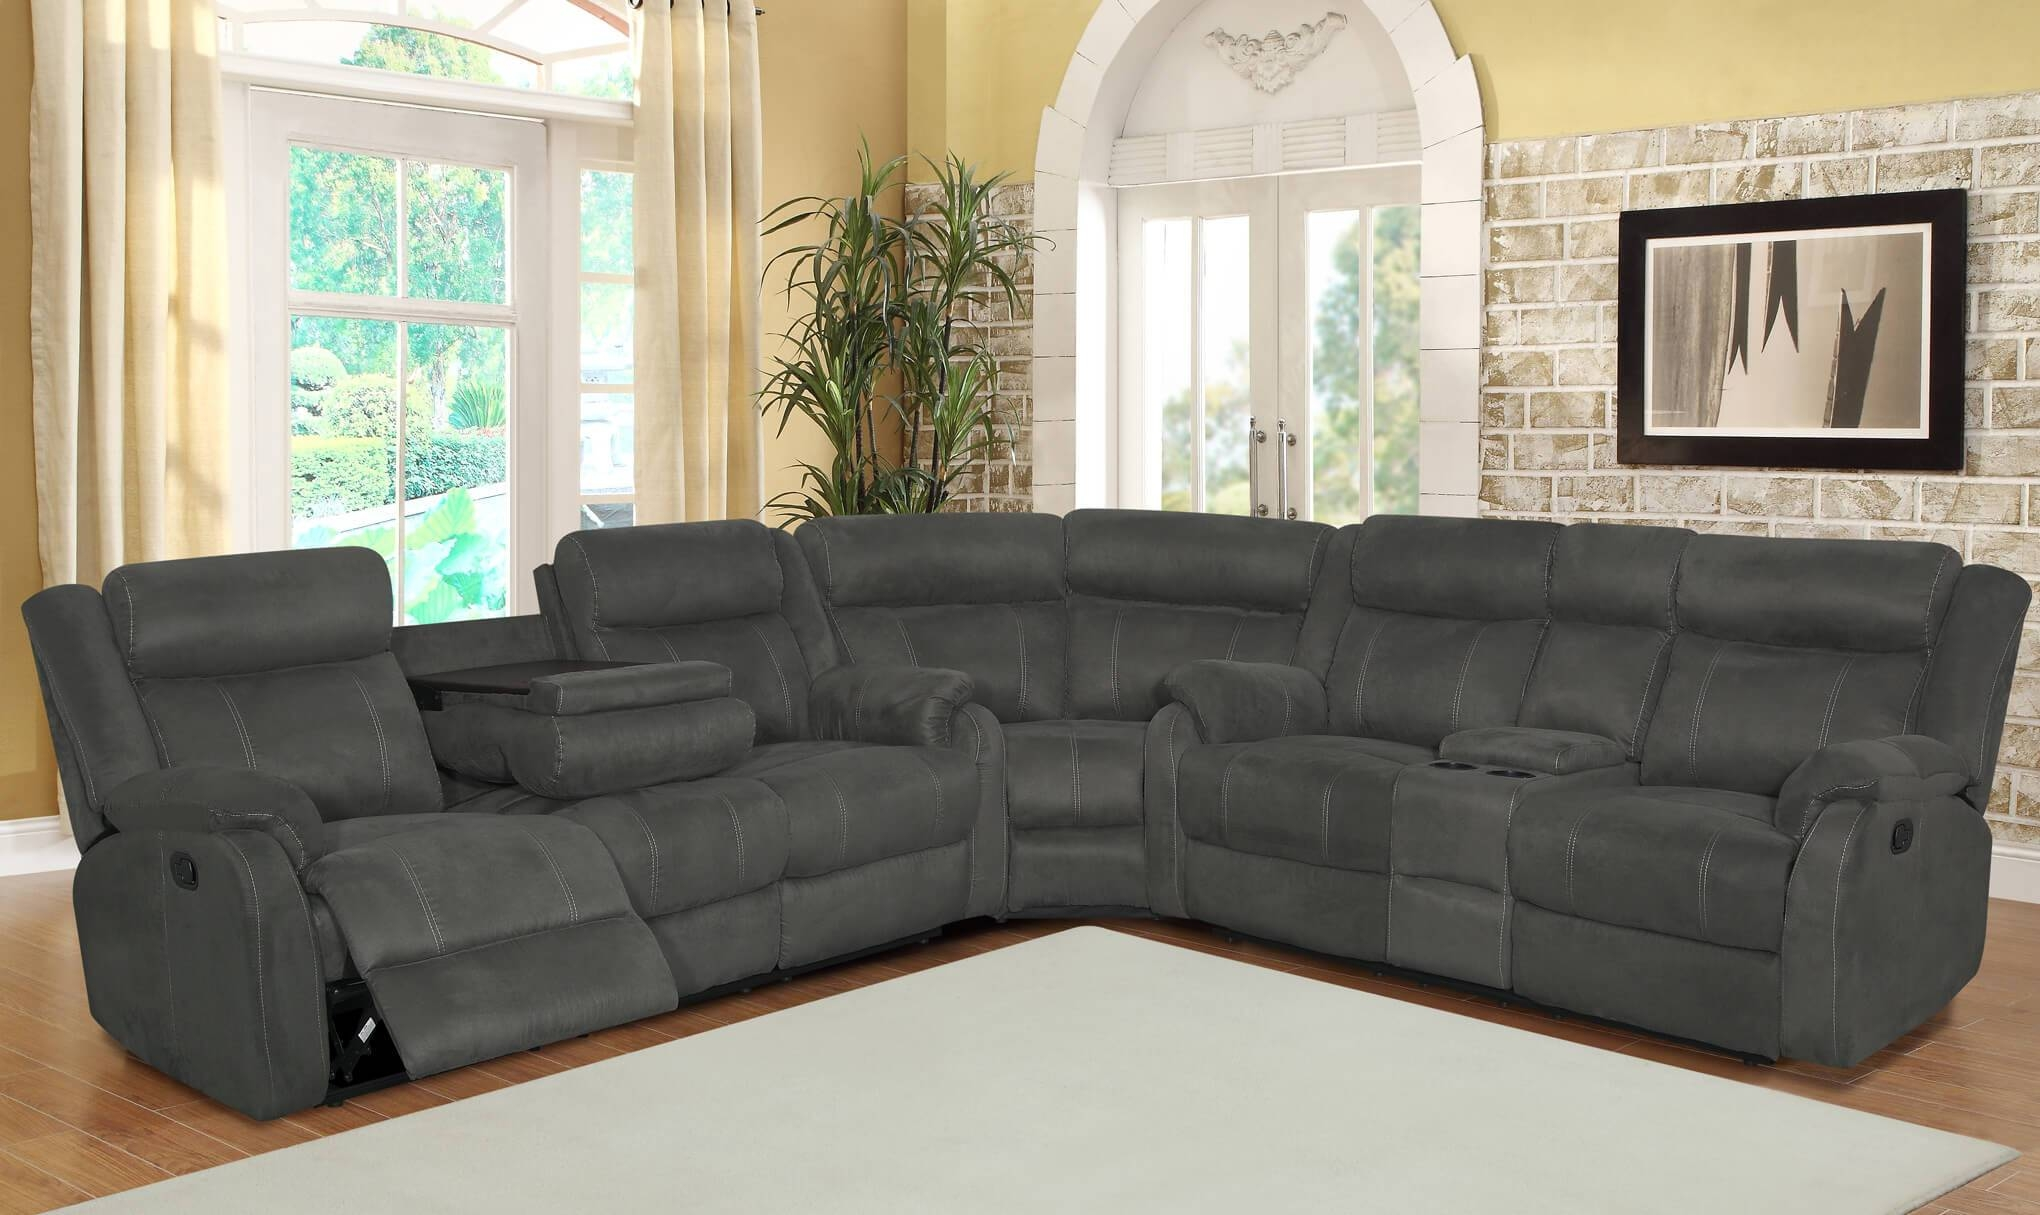 Grey Reclining Sectional | Sectional Sofa Sets within Charcoal Gray Sectional Sofas (Image 9 of 15)